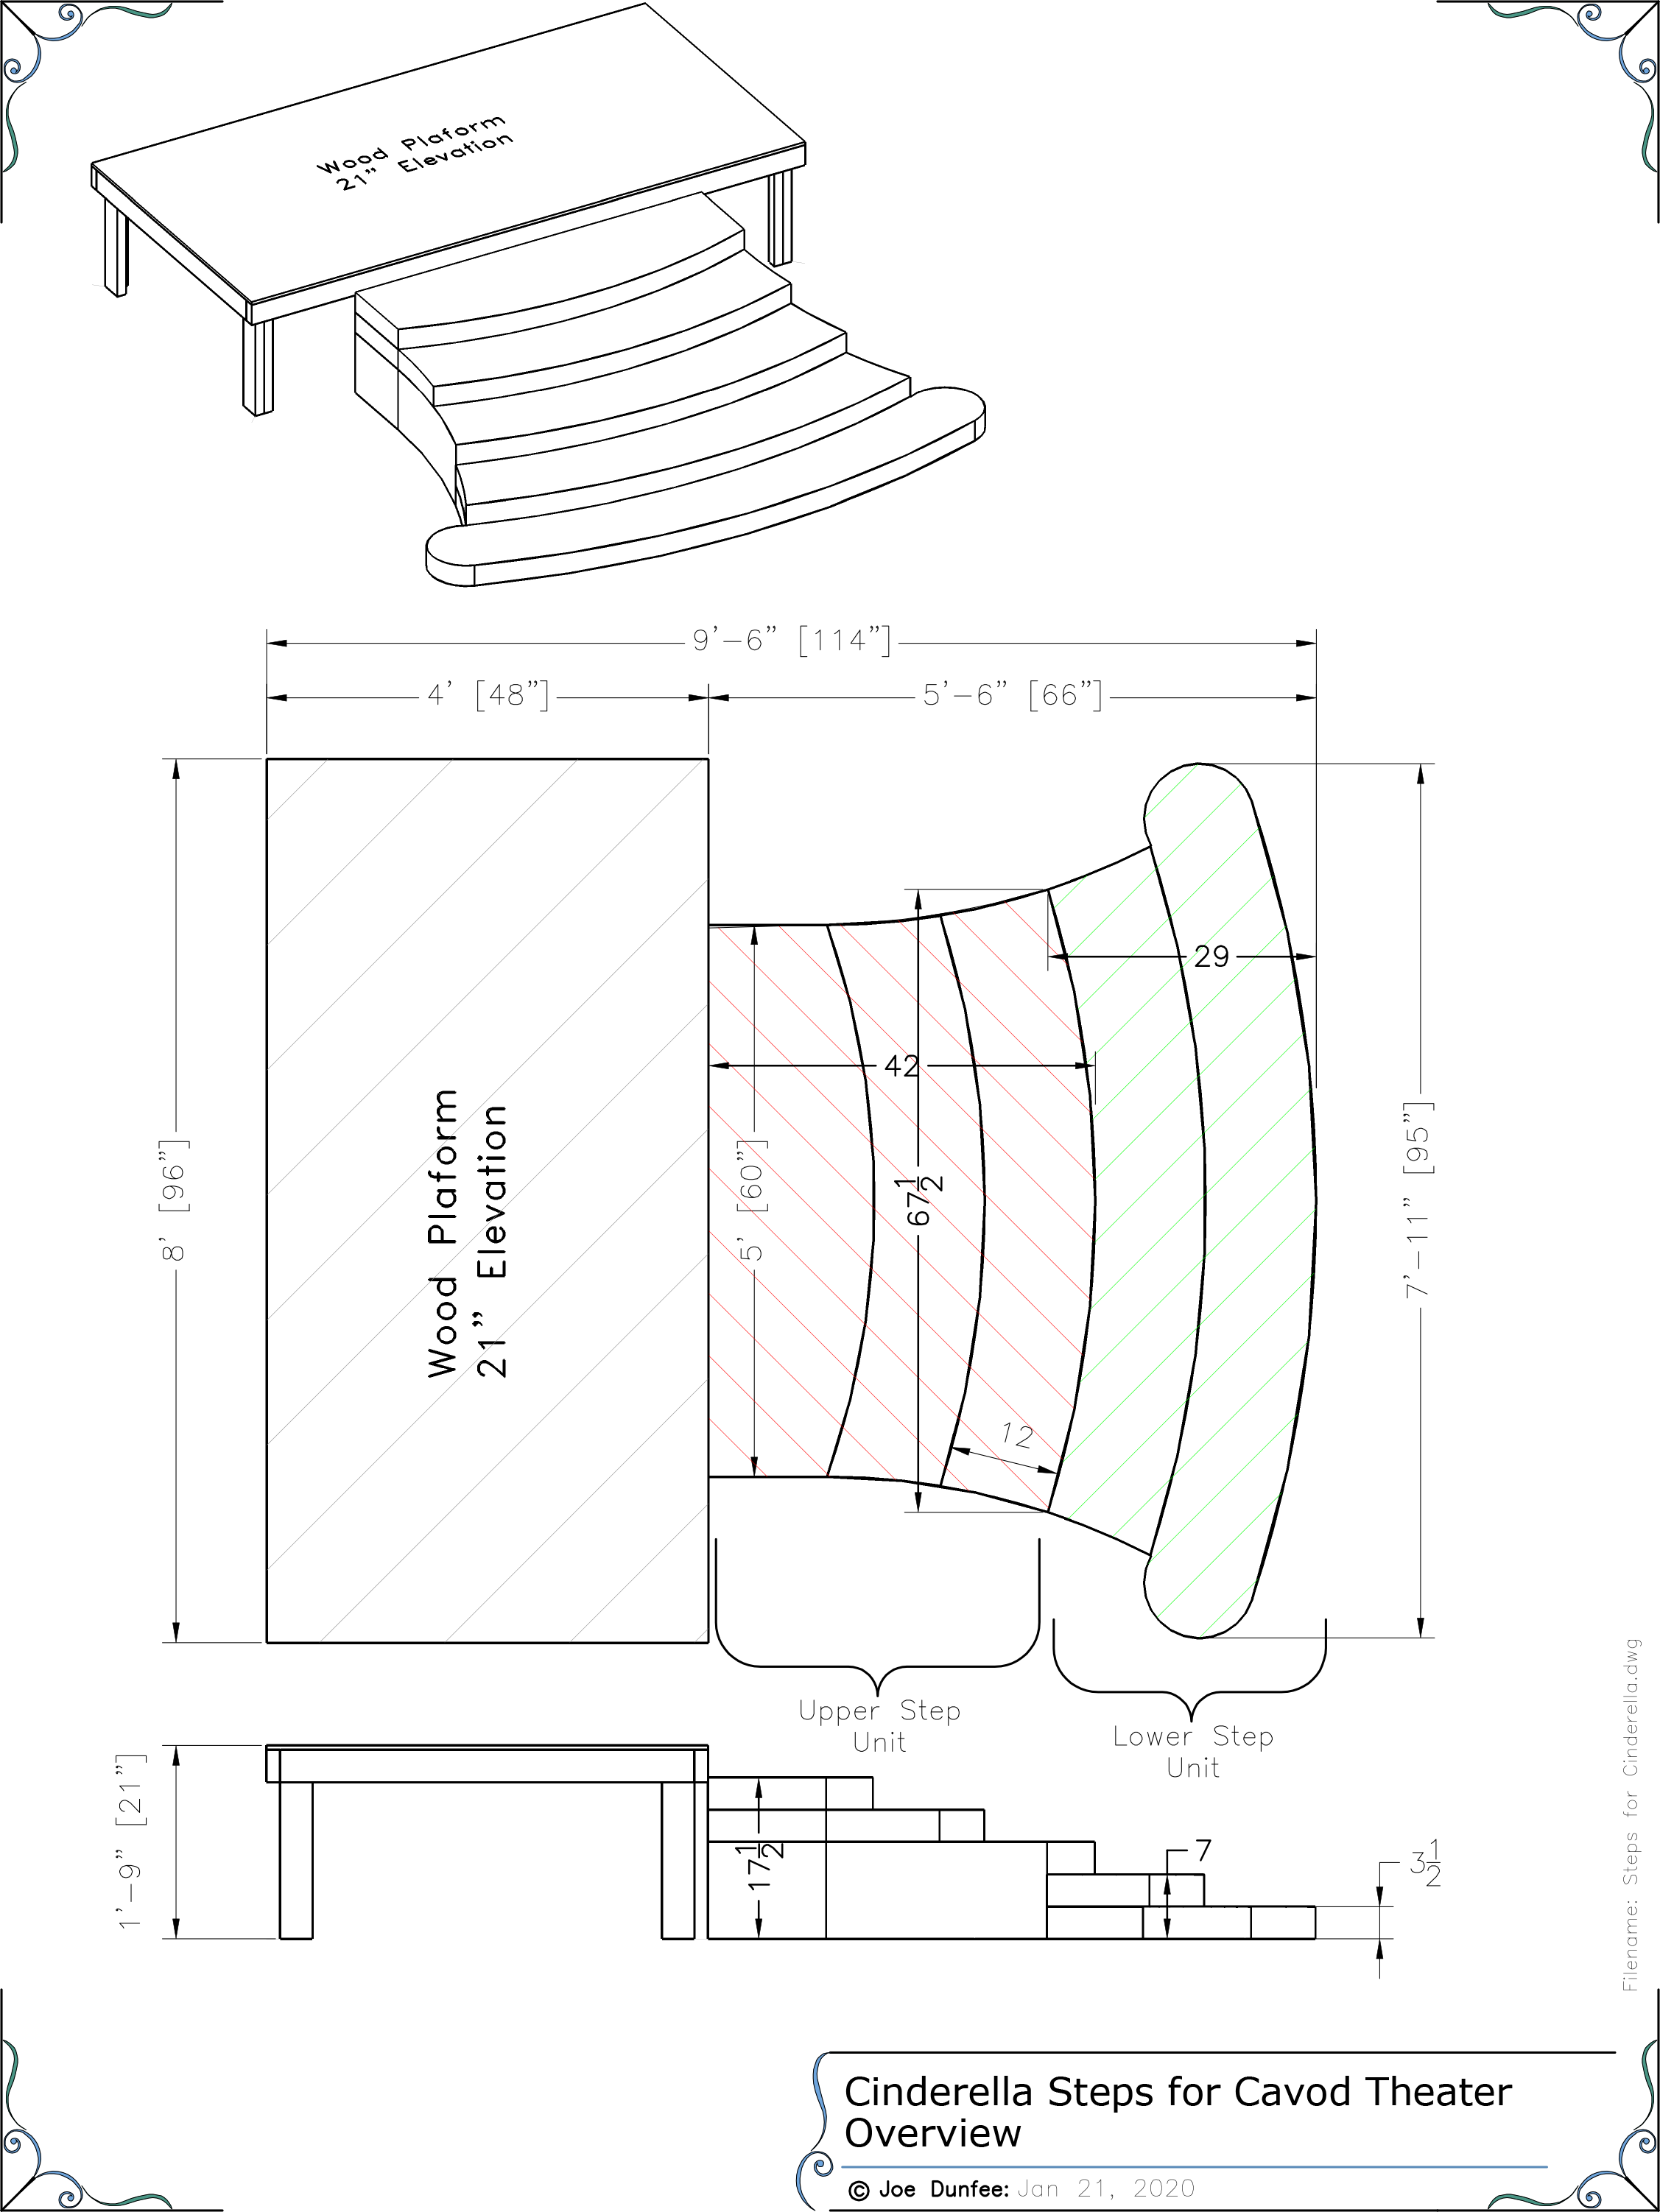 theatre stage design the steps for cinderella plan view